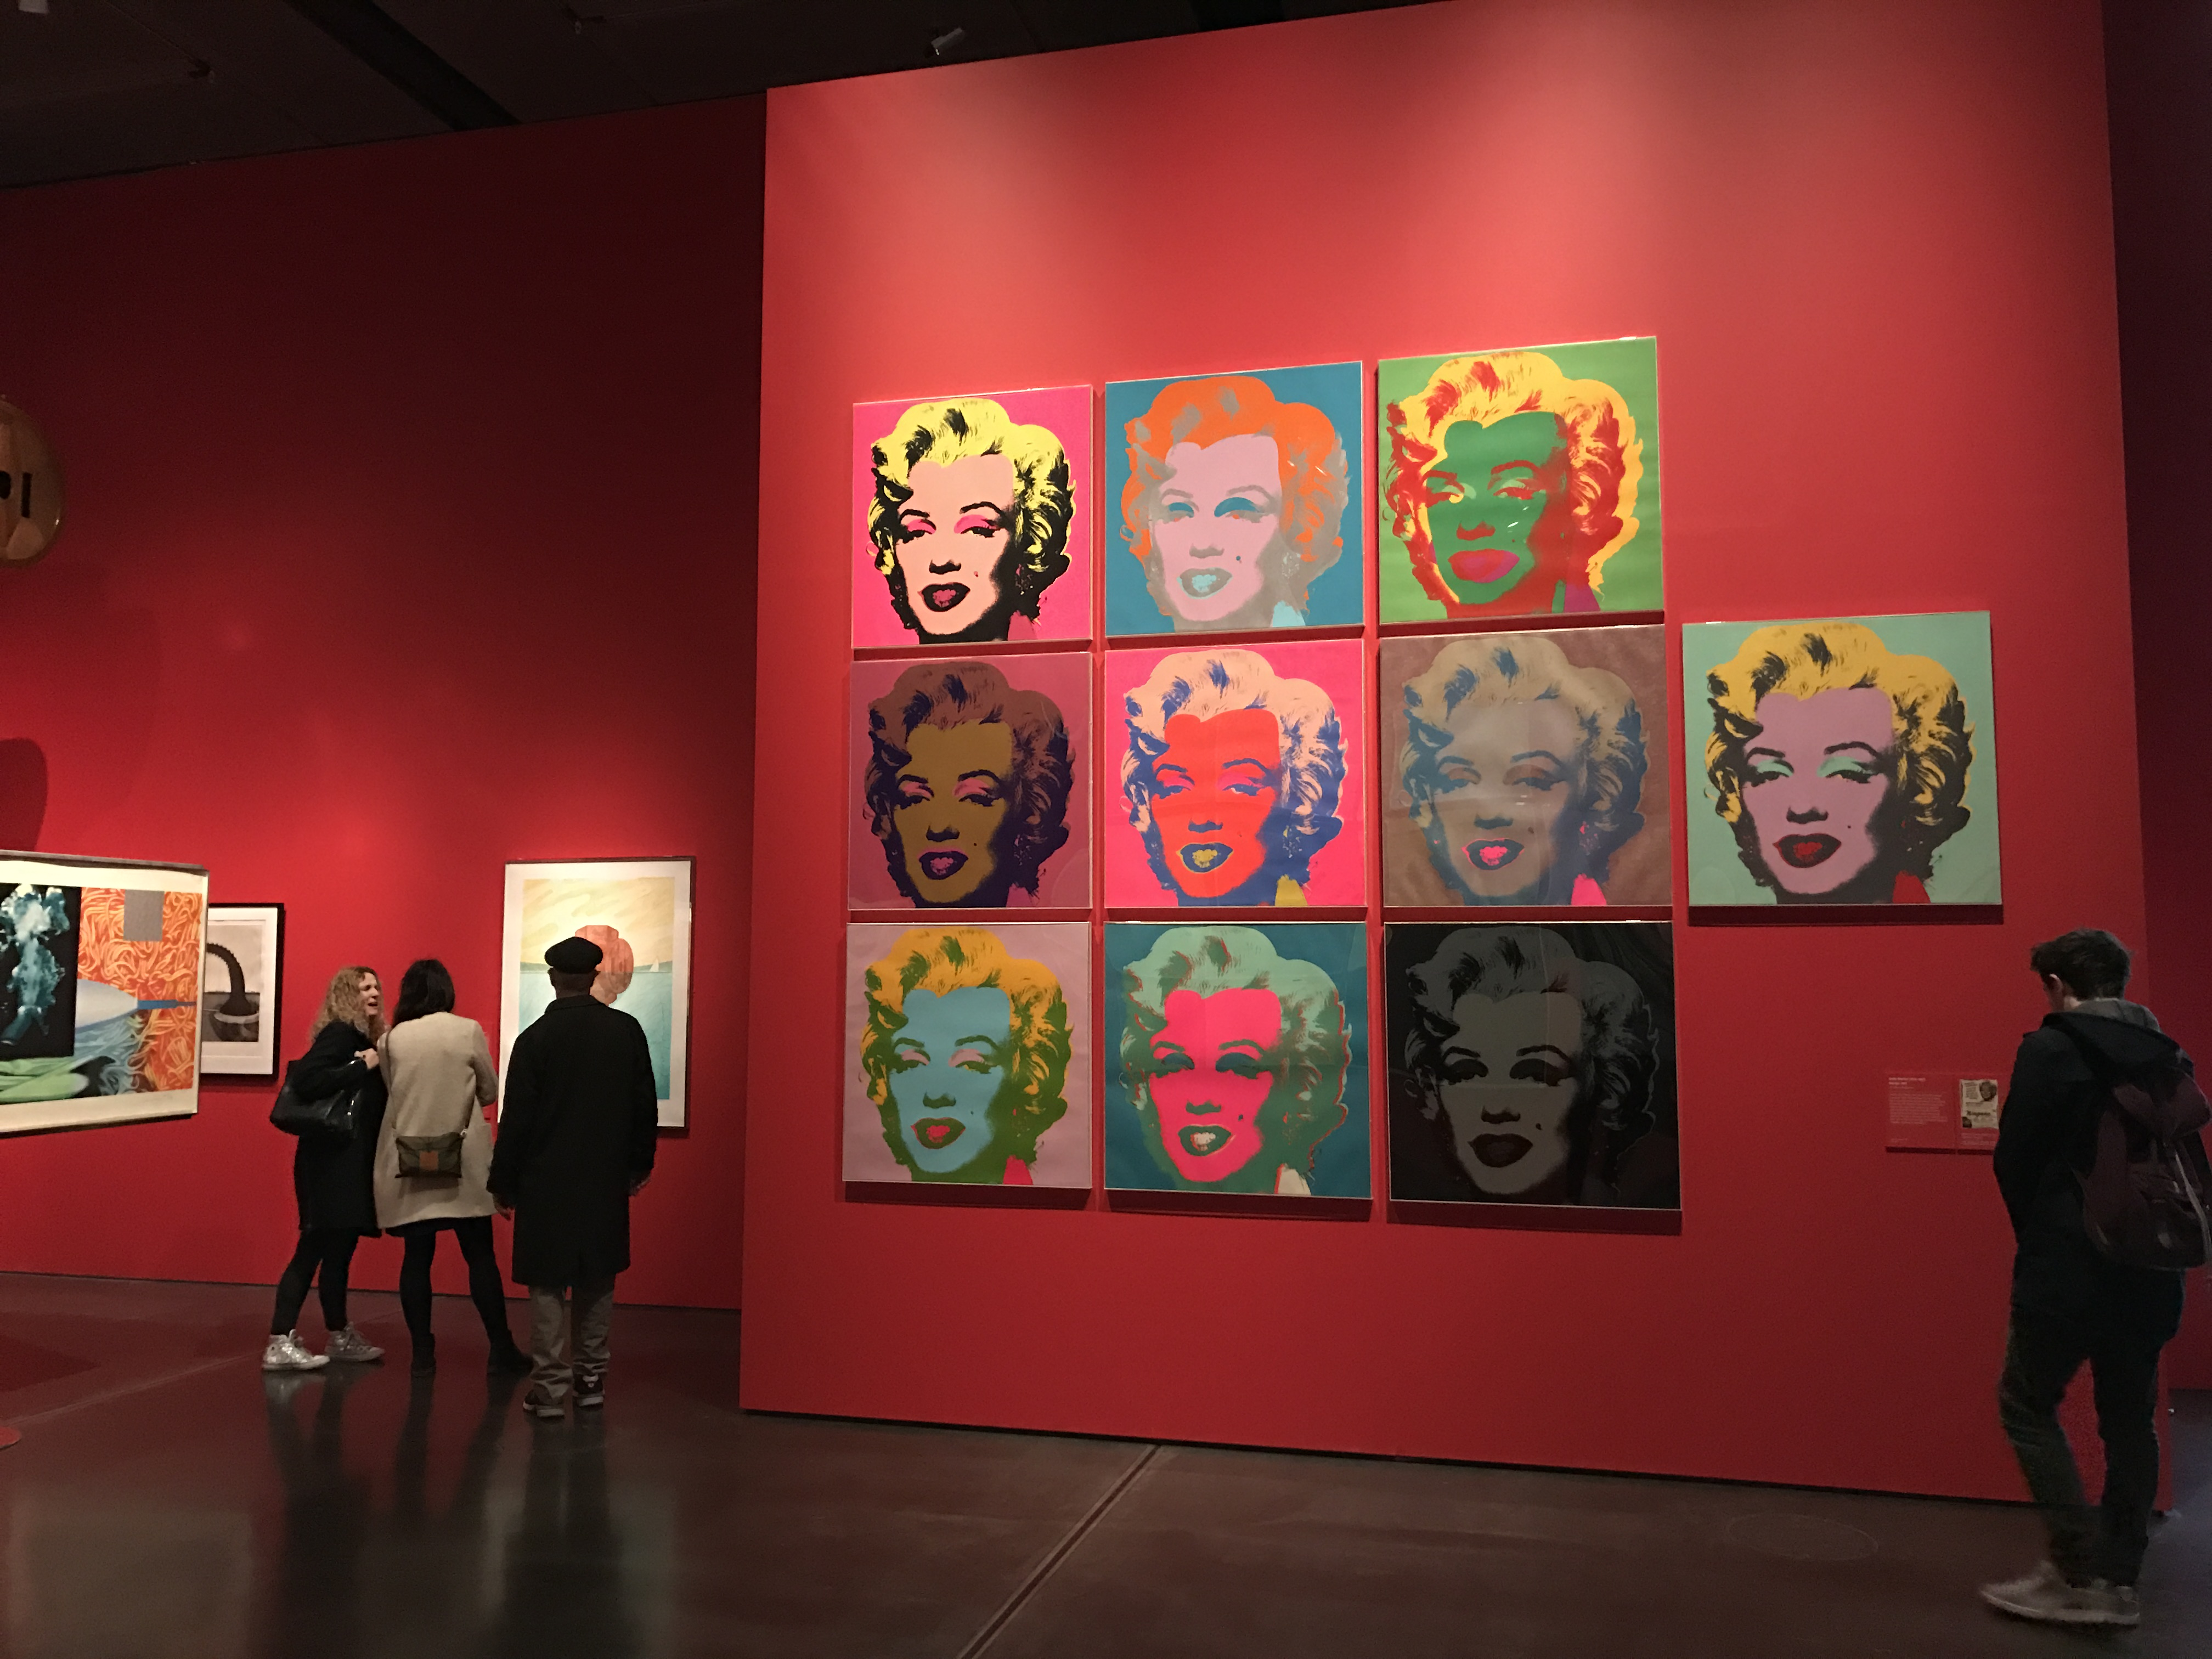 Andy Warhol's 10 Marilyn Monroes in The American Dream exhibition.